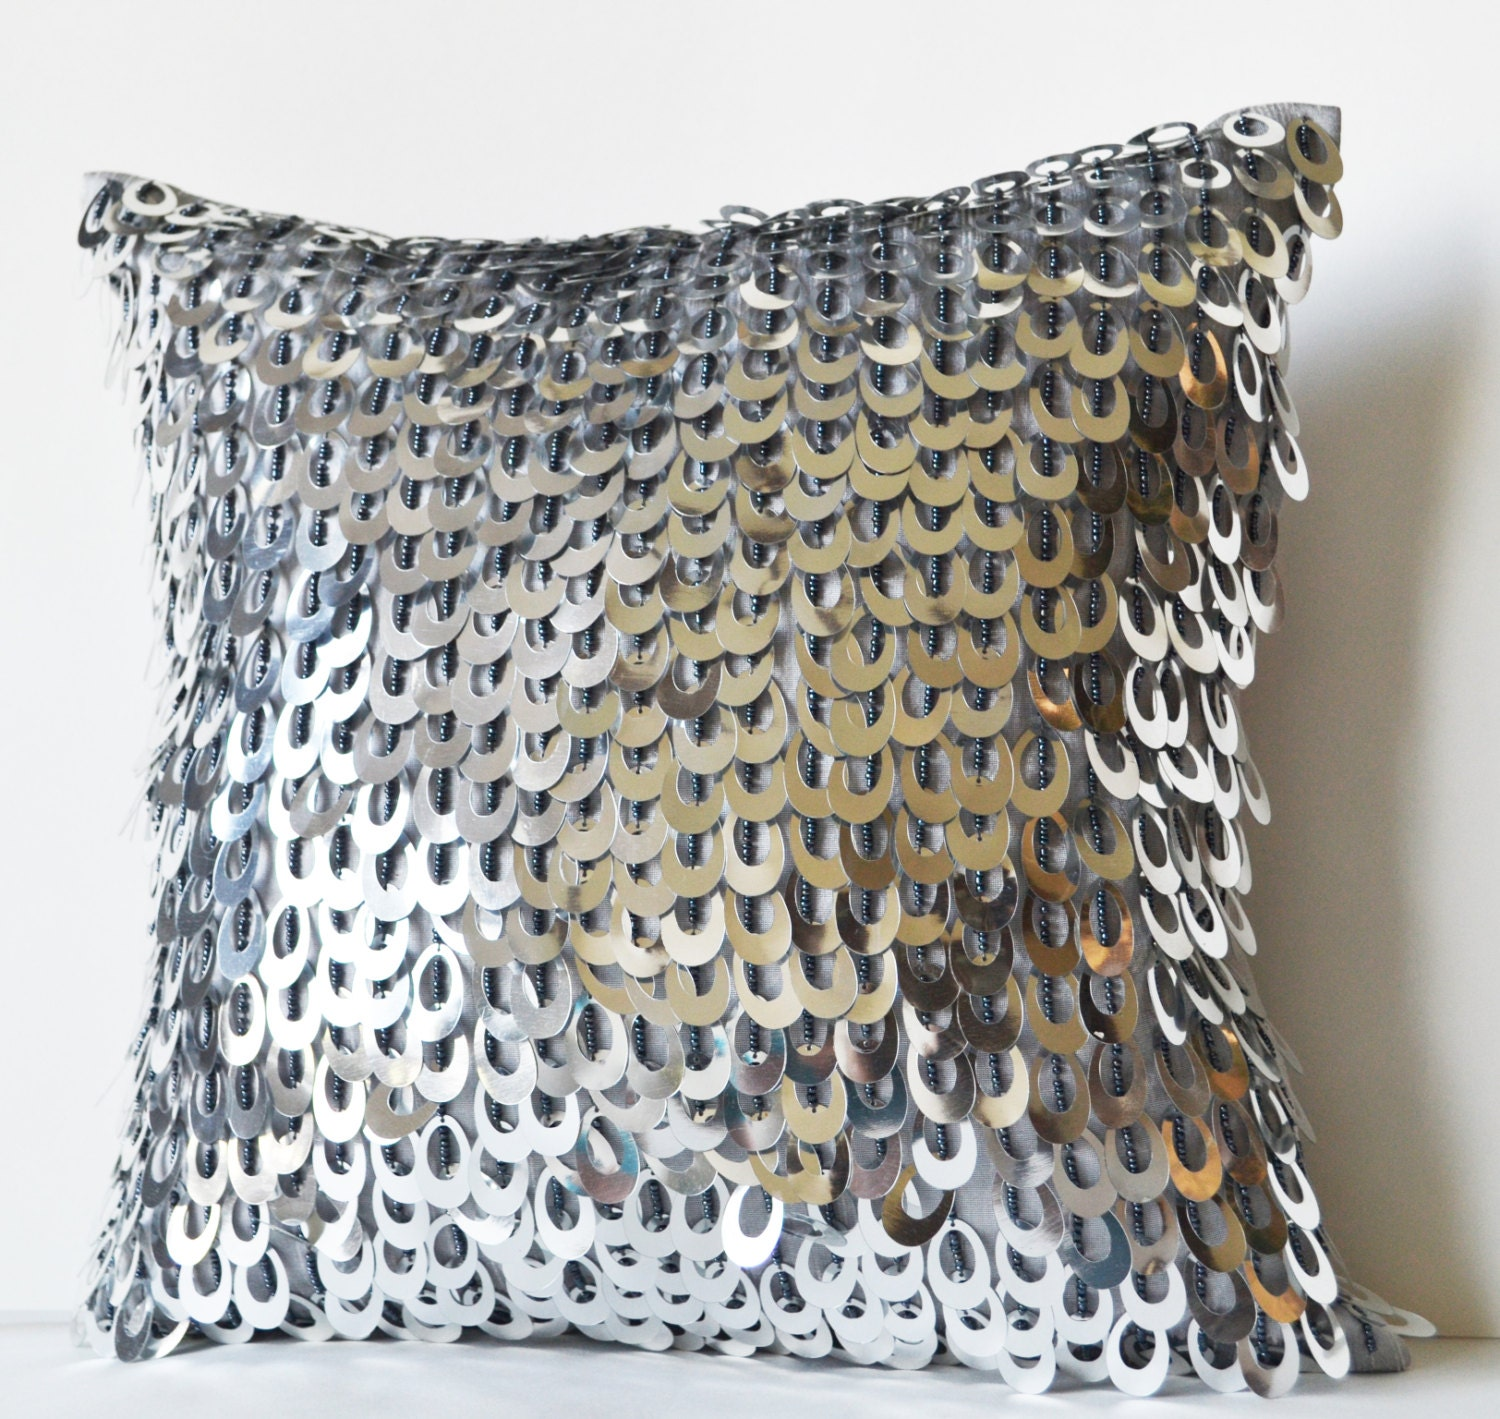 Decorative Pillows With Sequins : Decorative Throw Pillow Cover with Metallic Sequins Beads